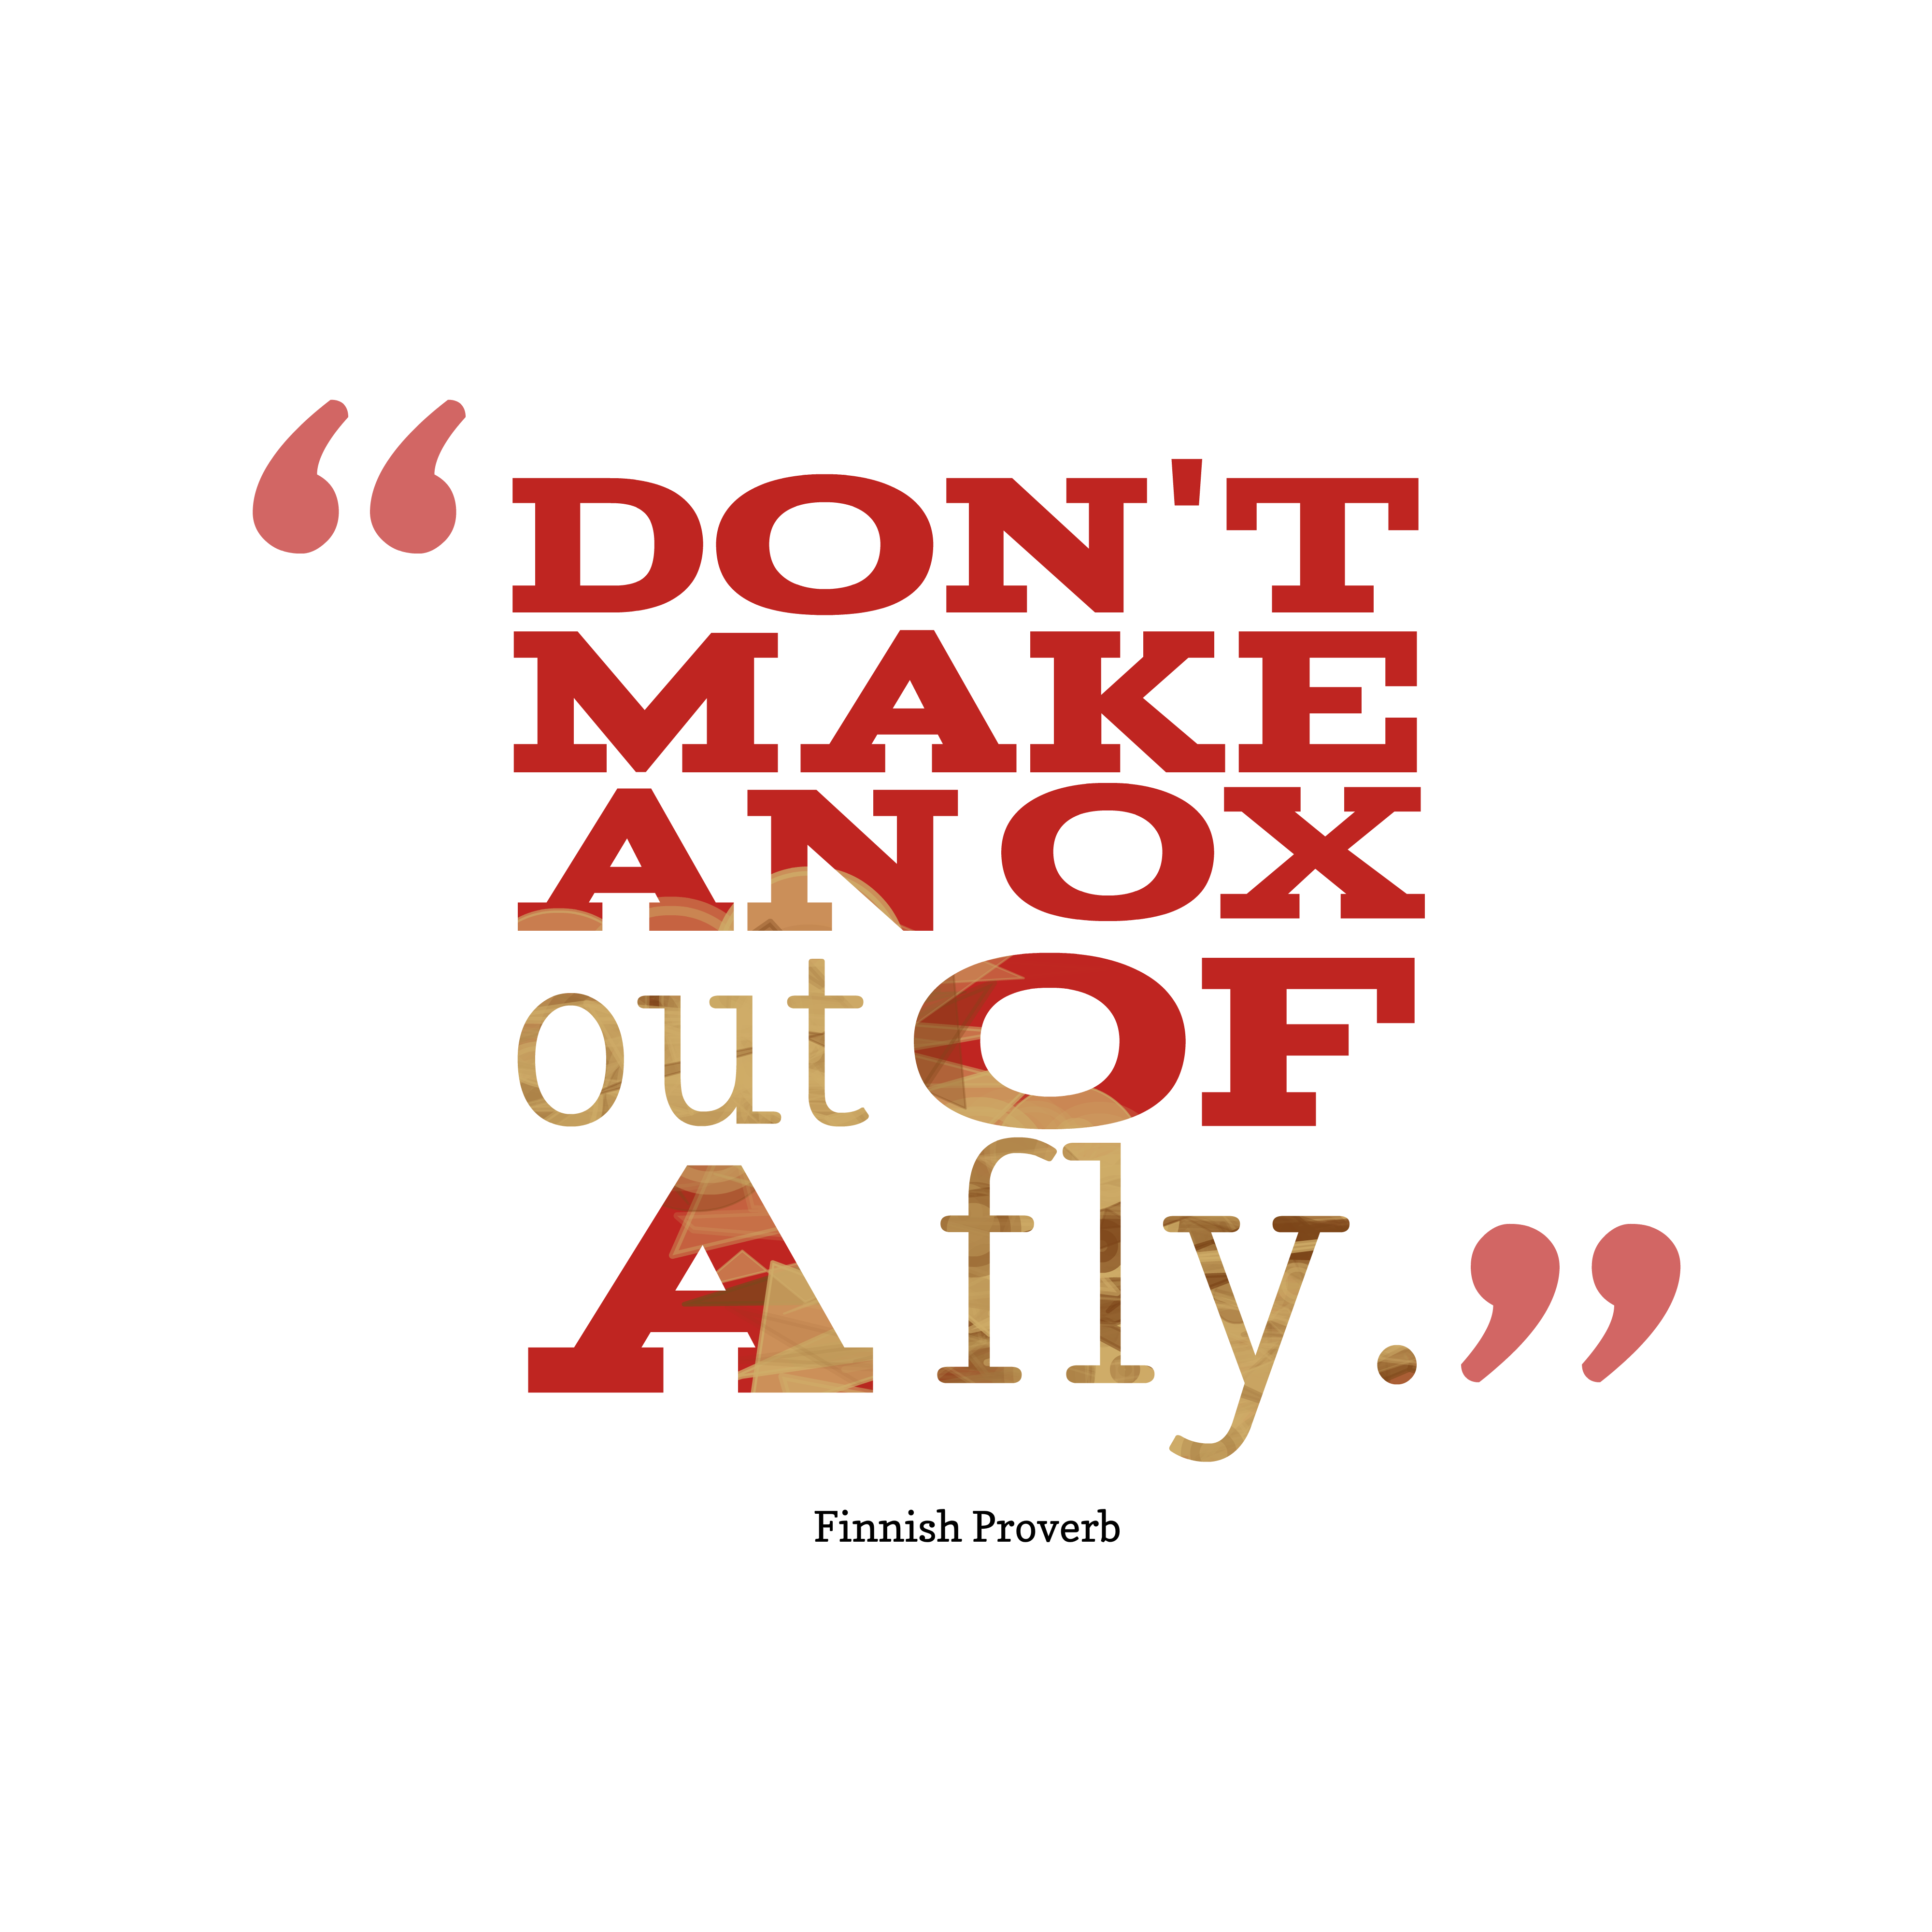 Quotes image of Don't make an ox out of a fly.